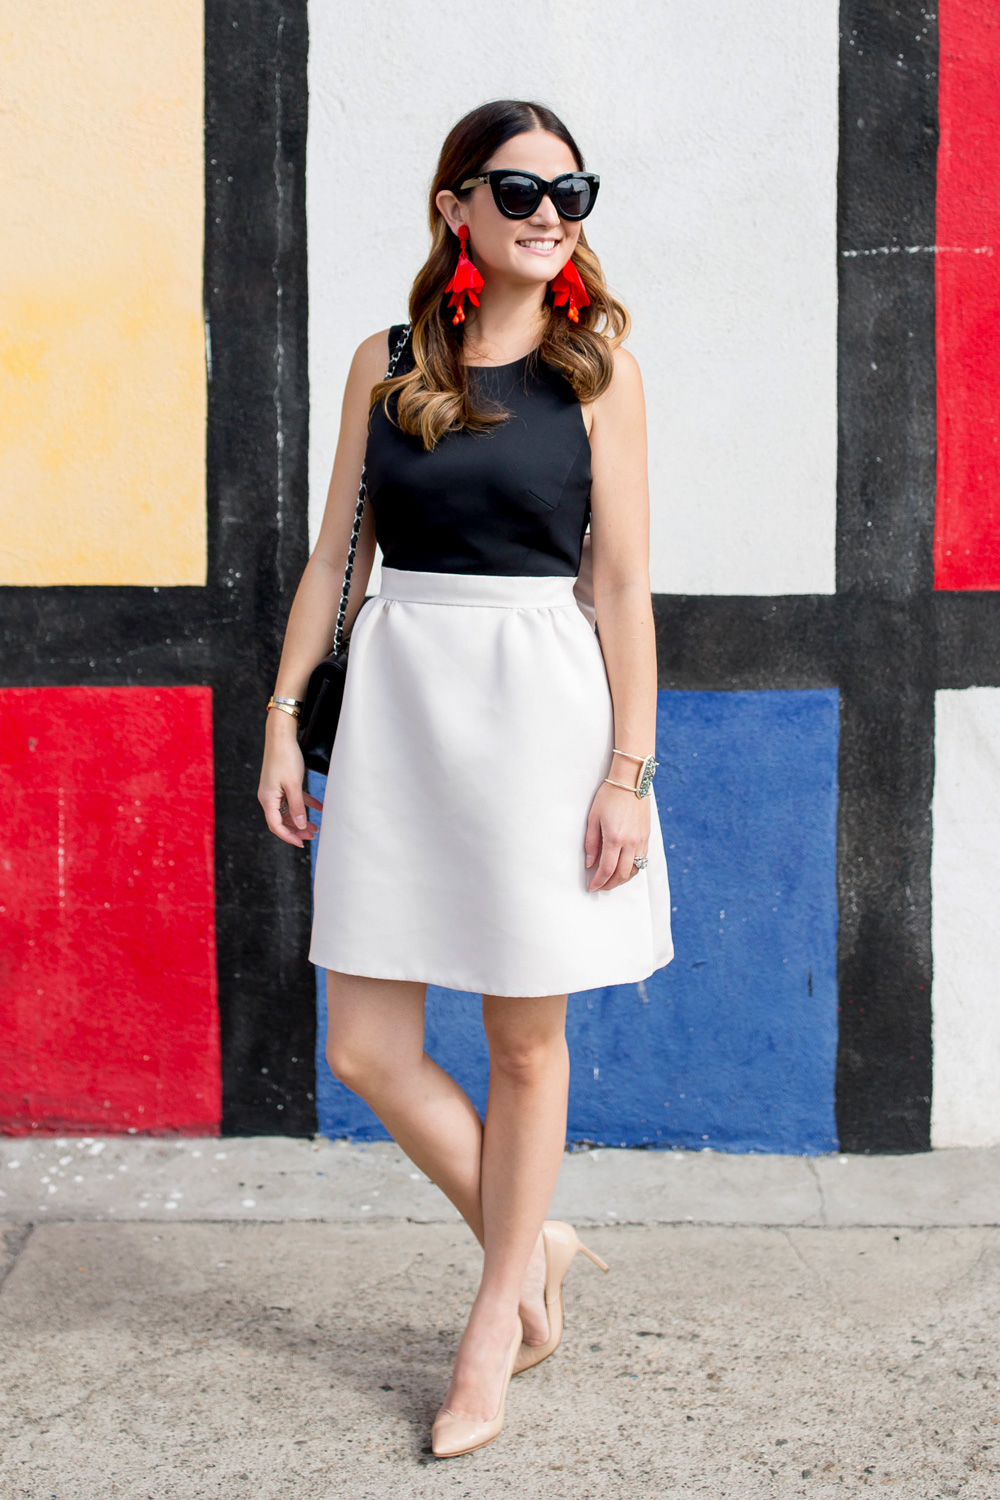 Jennifer Lake Style Charade in a black and white Kate Spade bow dress, red Oscar de la Renta floral earrings, and Manolo Blahnik BB pumps at a Mondrian mural in Los Angeles